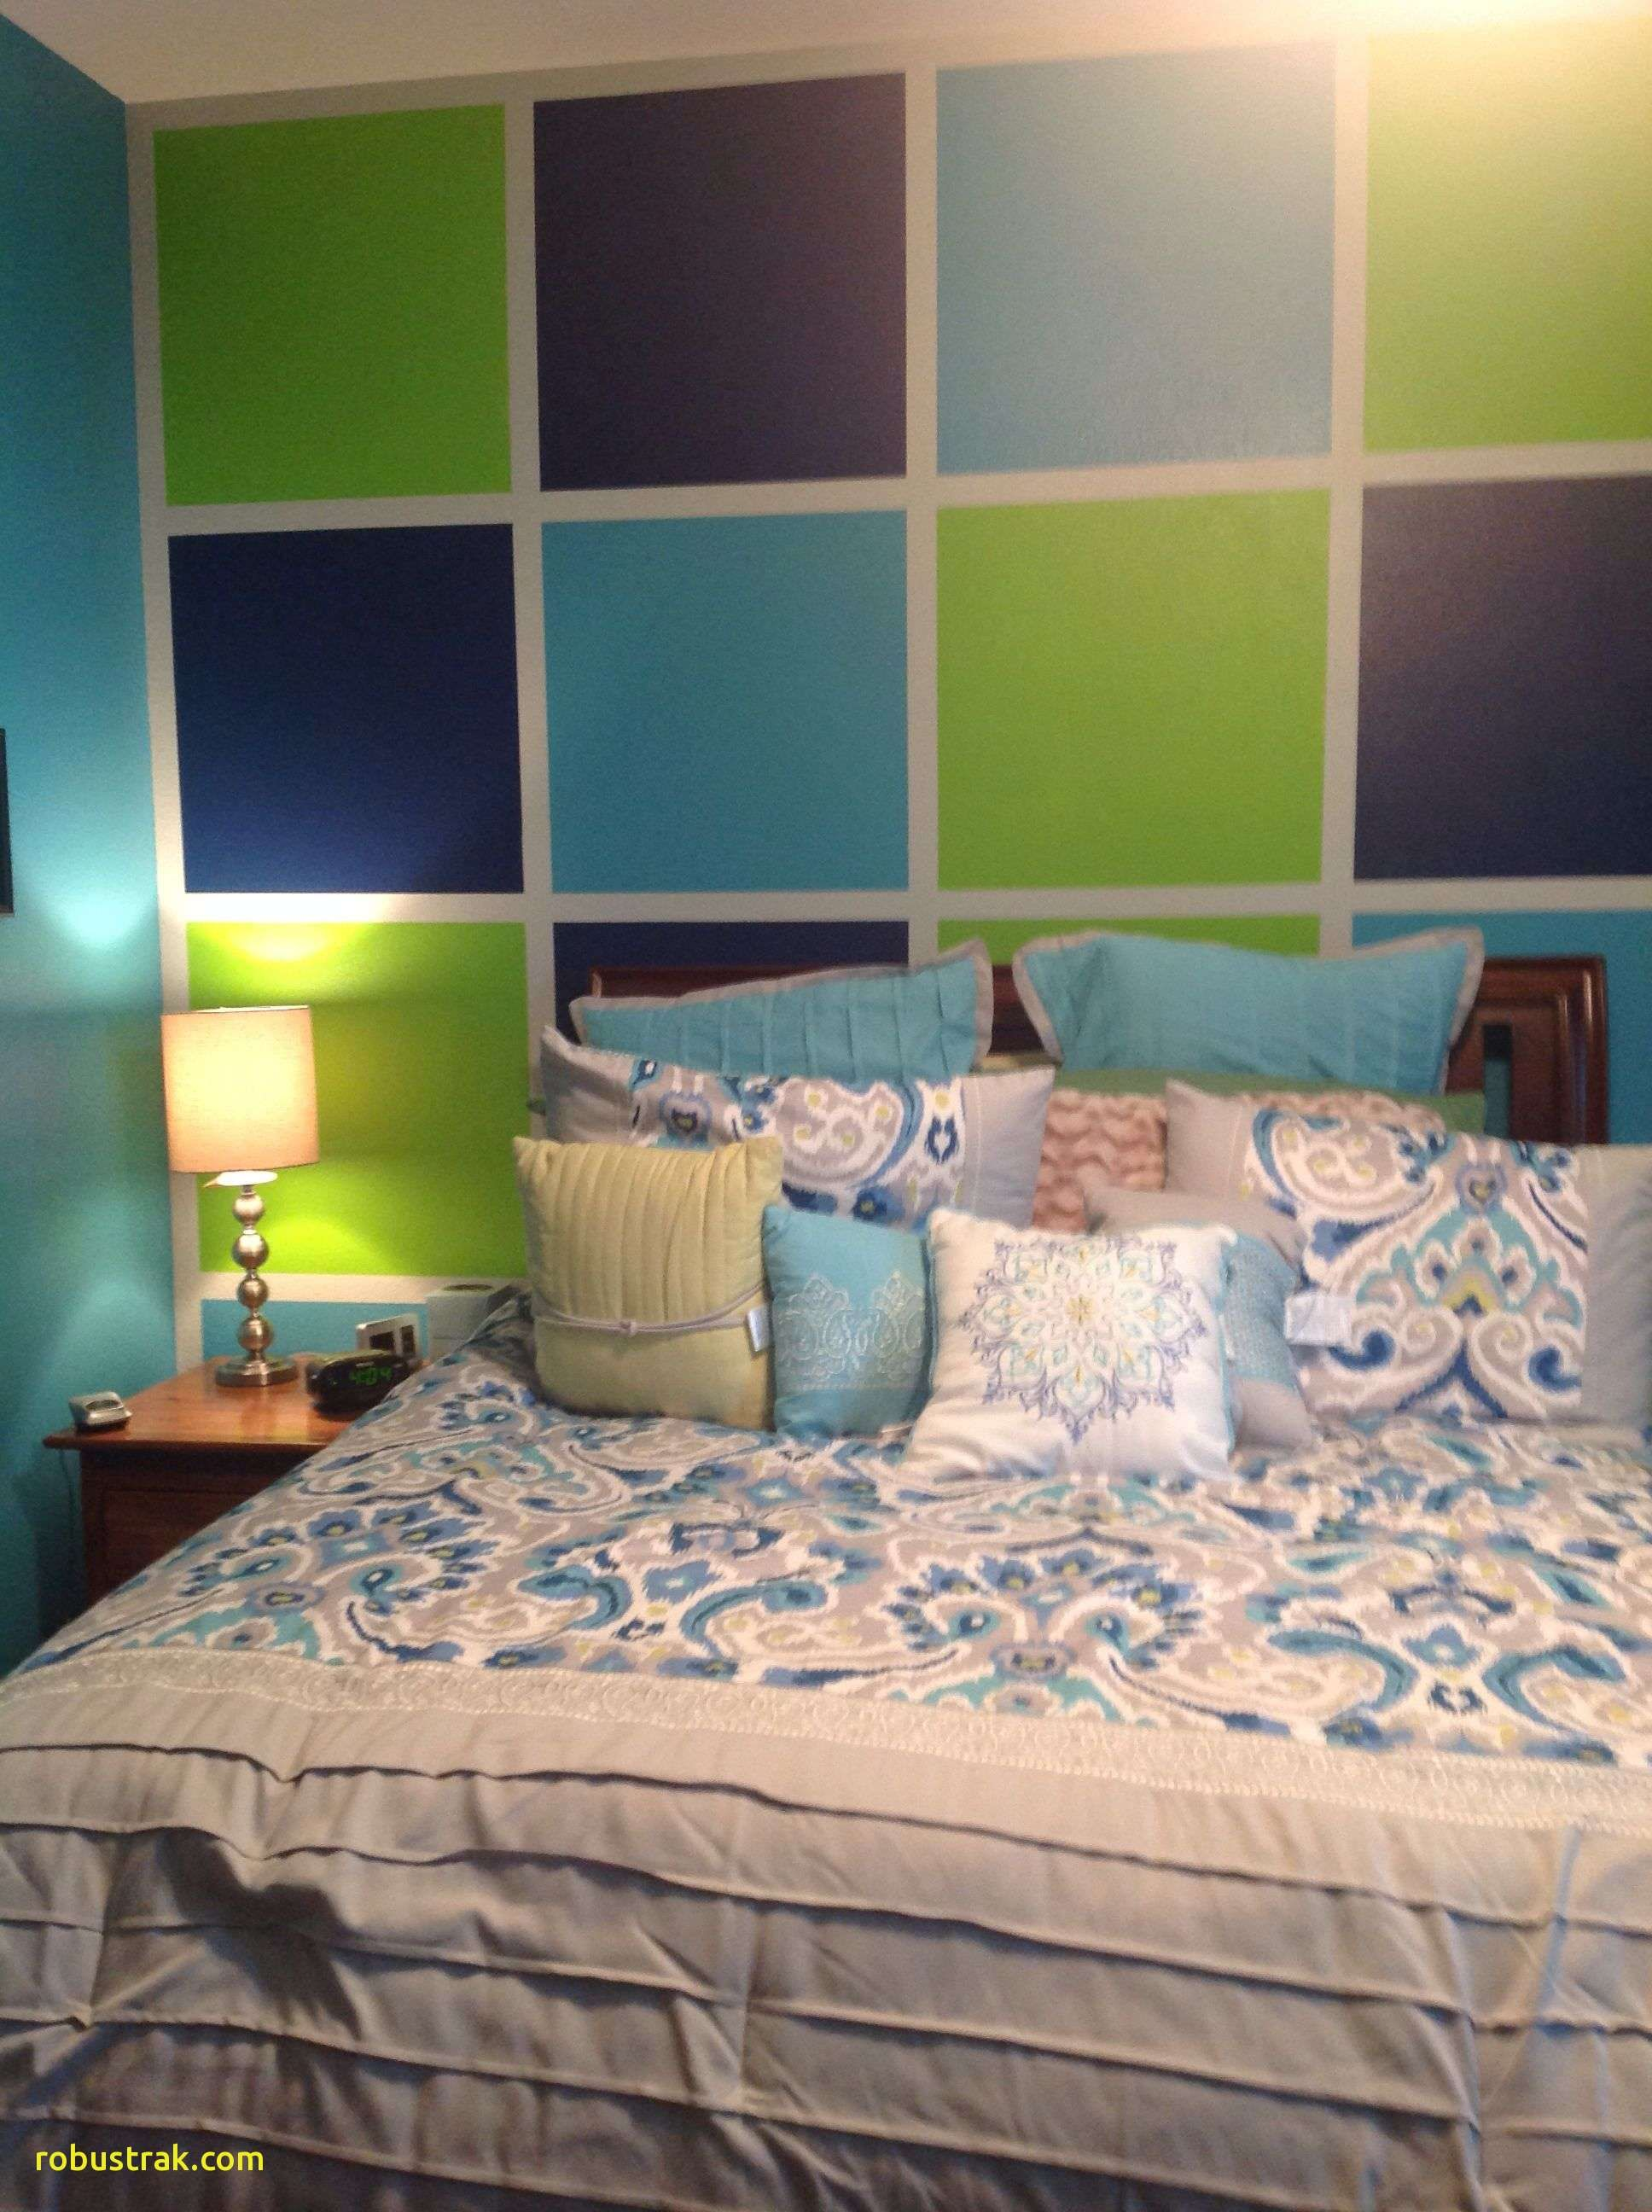 Pin By Katelyn H On House Stuff Lime Green Bedrooms Green Bedroom Walls Green Boys Room